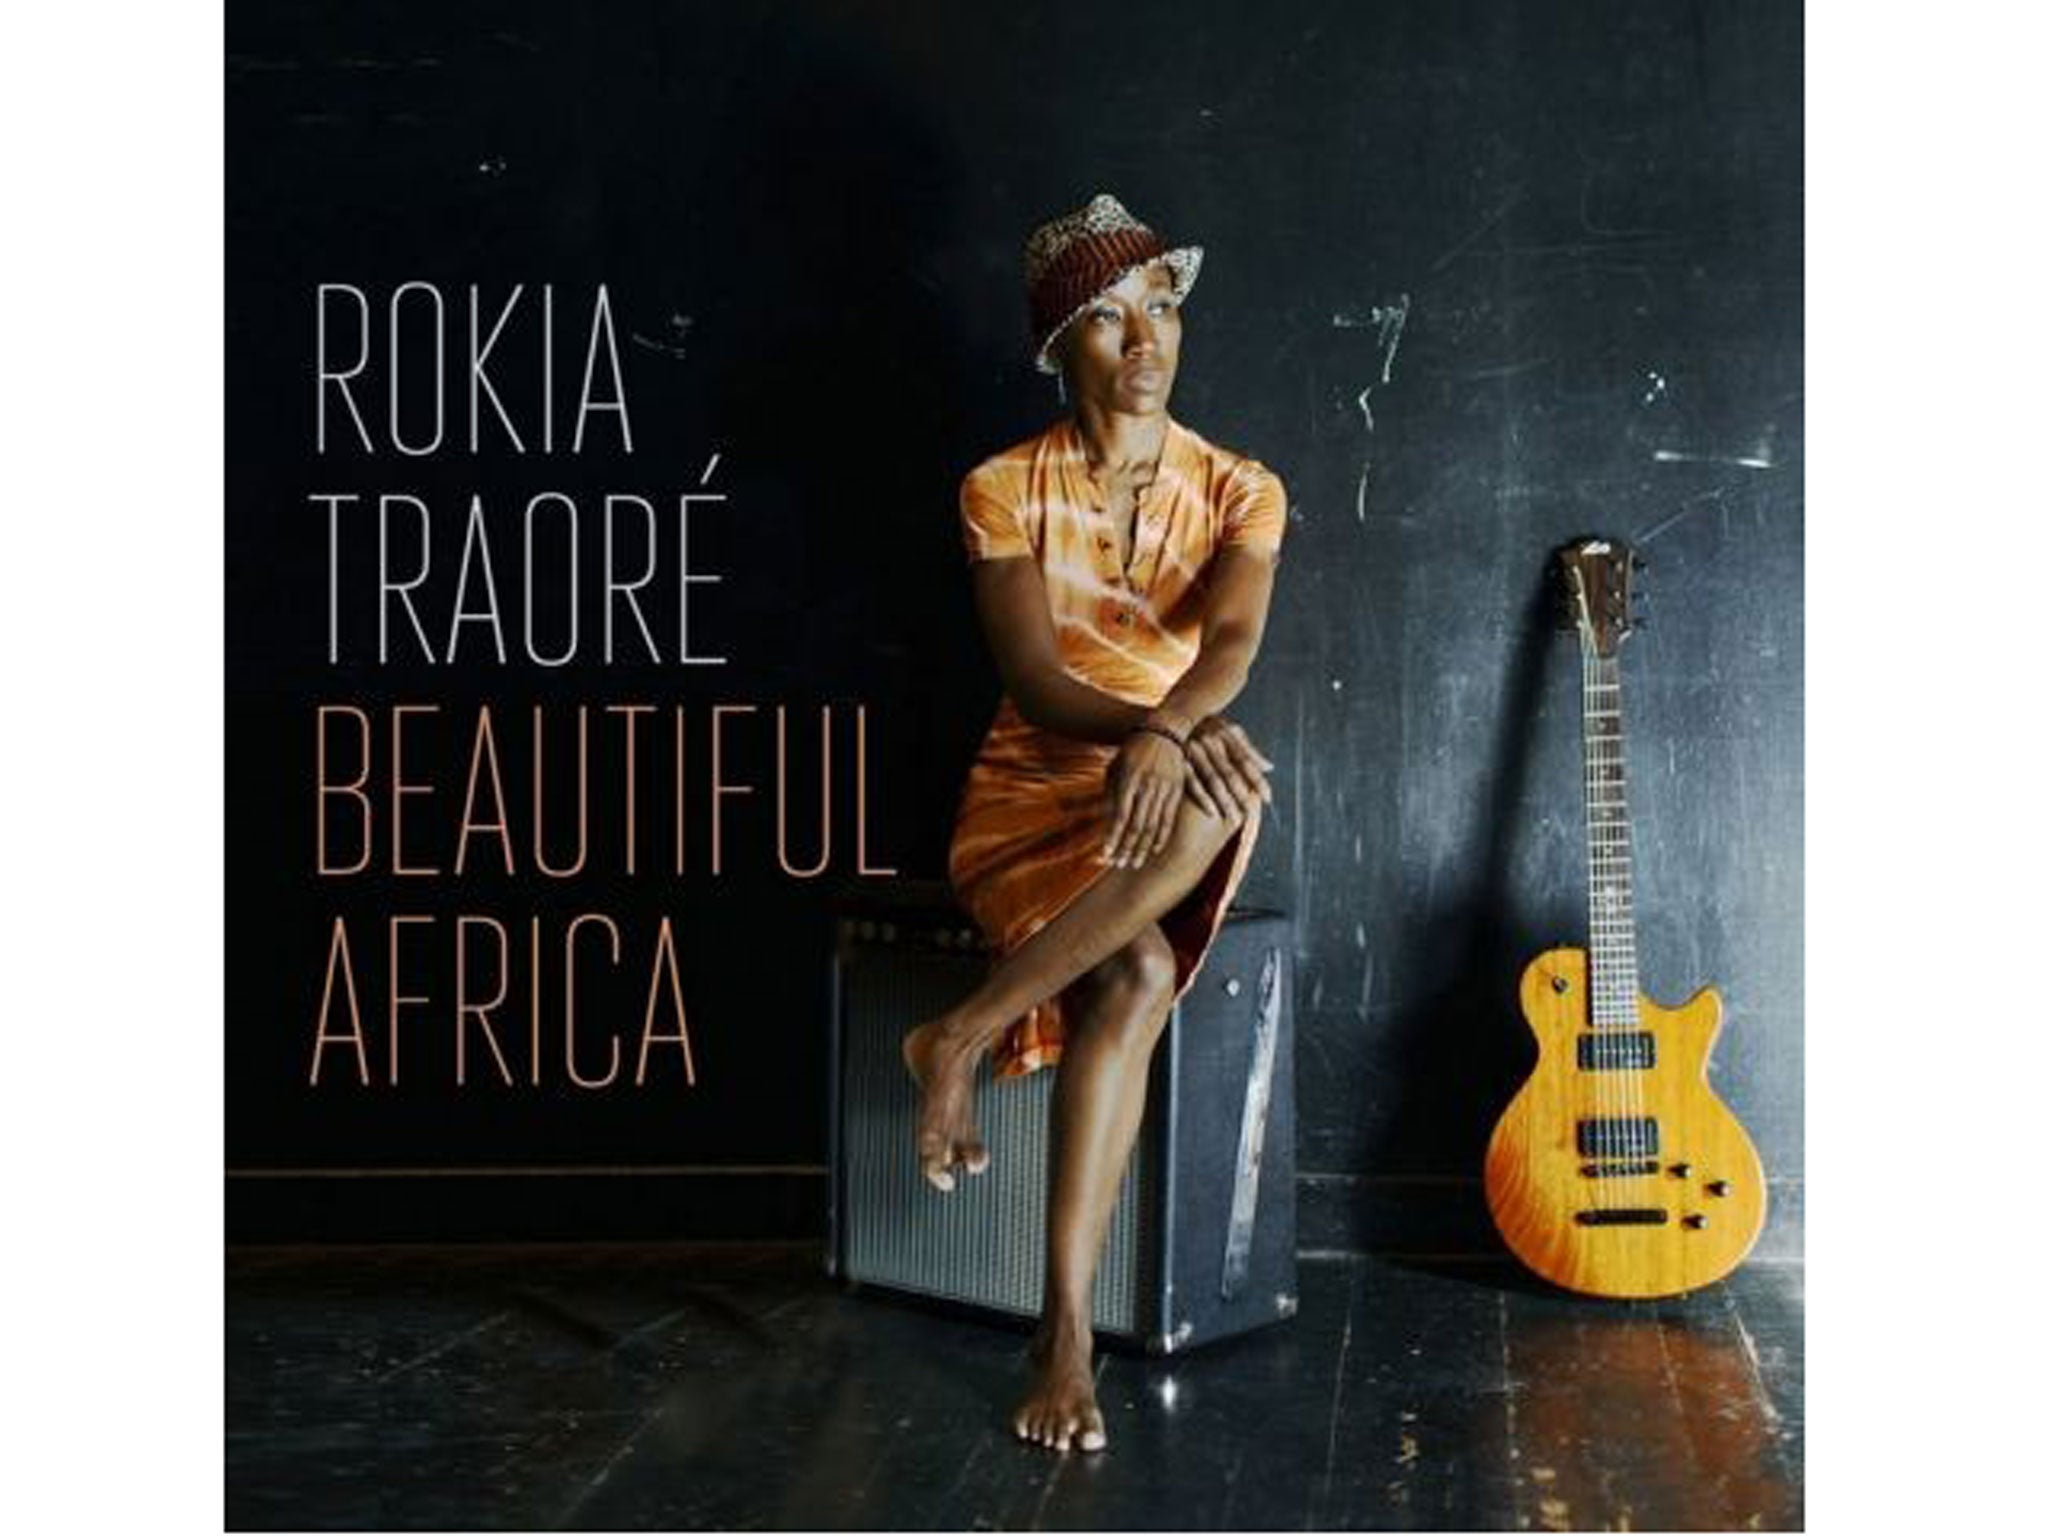 https://static.independent.co.uk/s3fs-public/thumbnails/image/2013/04/04/16/cd-rokia-traore.jpg